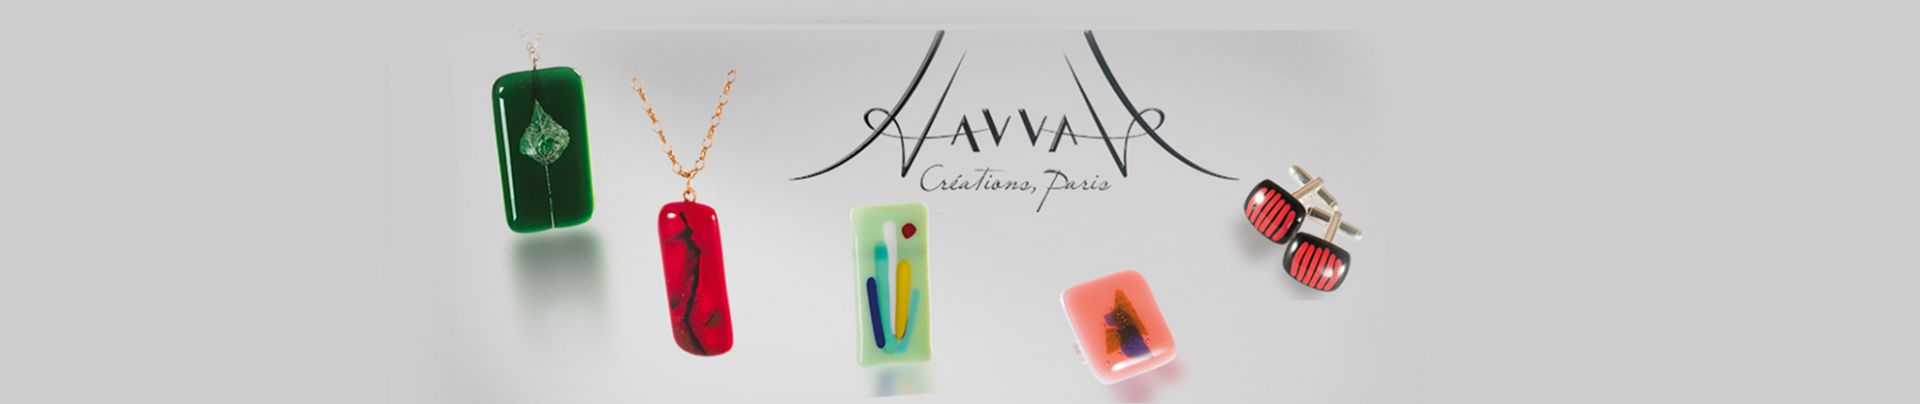 Havvah Paris